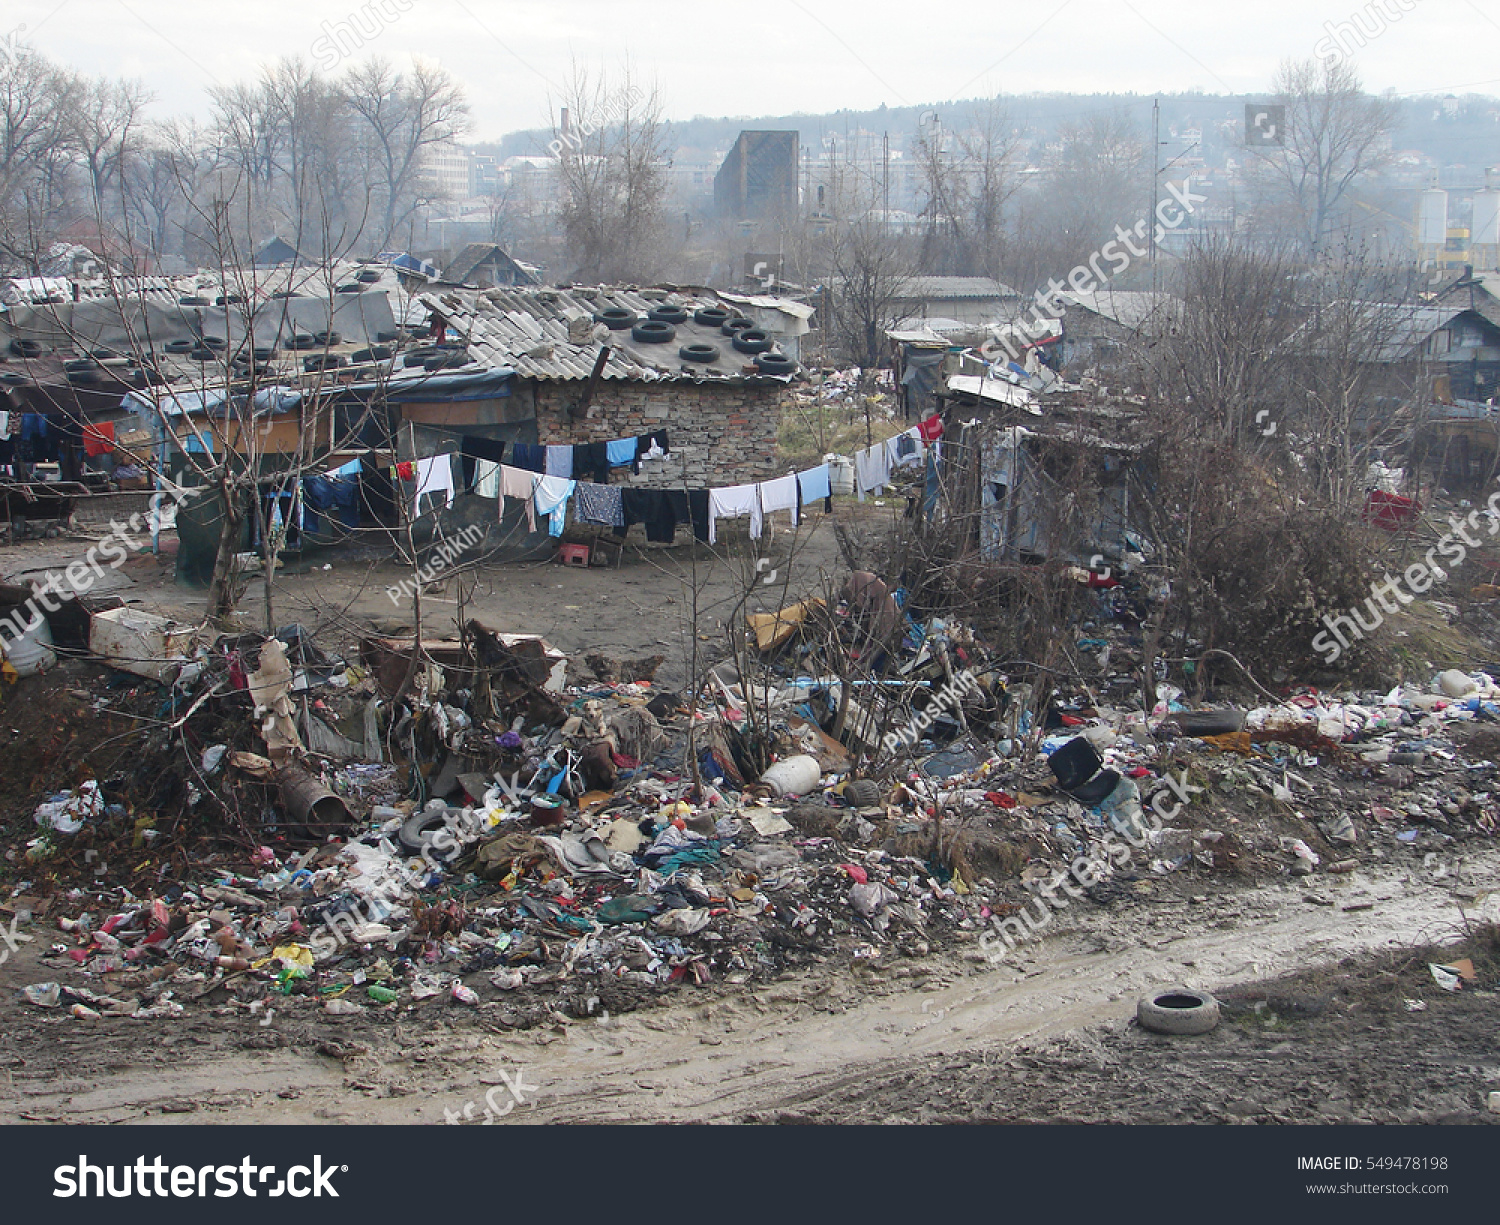 TLC Introduces Americas Wild Gypsy Sisters moreover Gypsy Slum Belgrade Serbia Town City 549478198 further I0000wRt5583fN3E in addition Deserted as well European Gypsies Take Teaching Jobs Despite Not Speaking English. on gypsy houses in romania